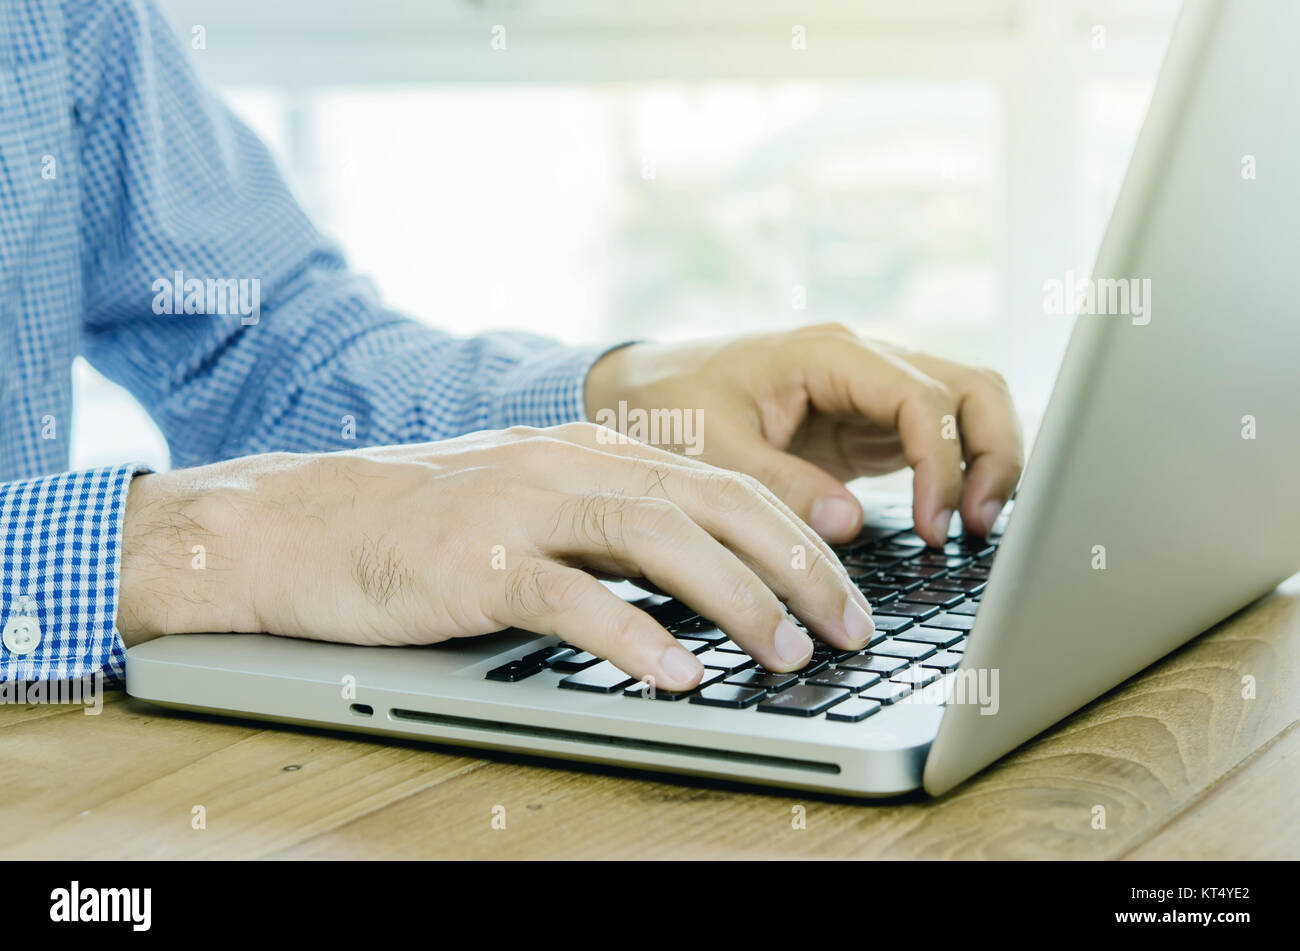 Close-up man hand using computer laptop in office. - Stock Image